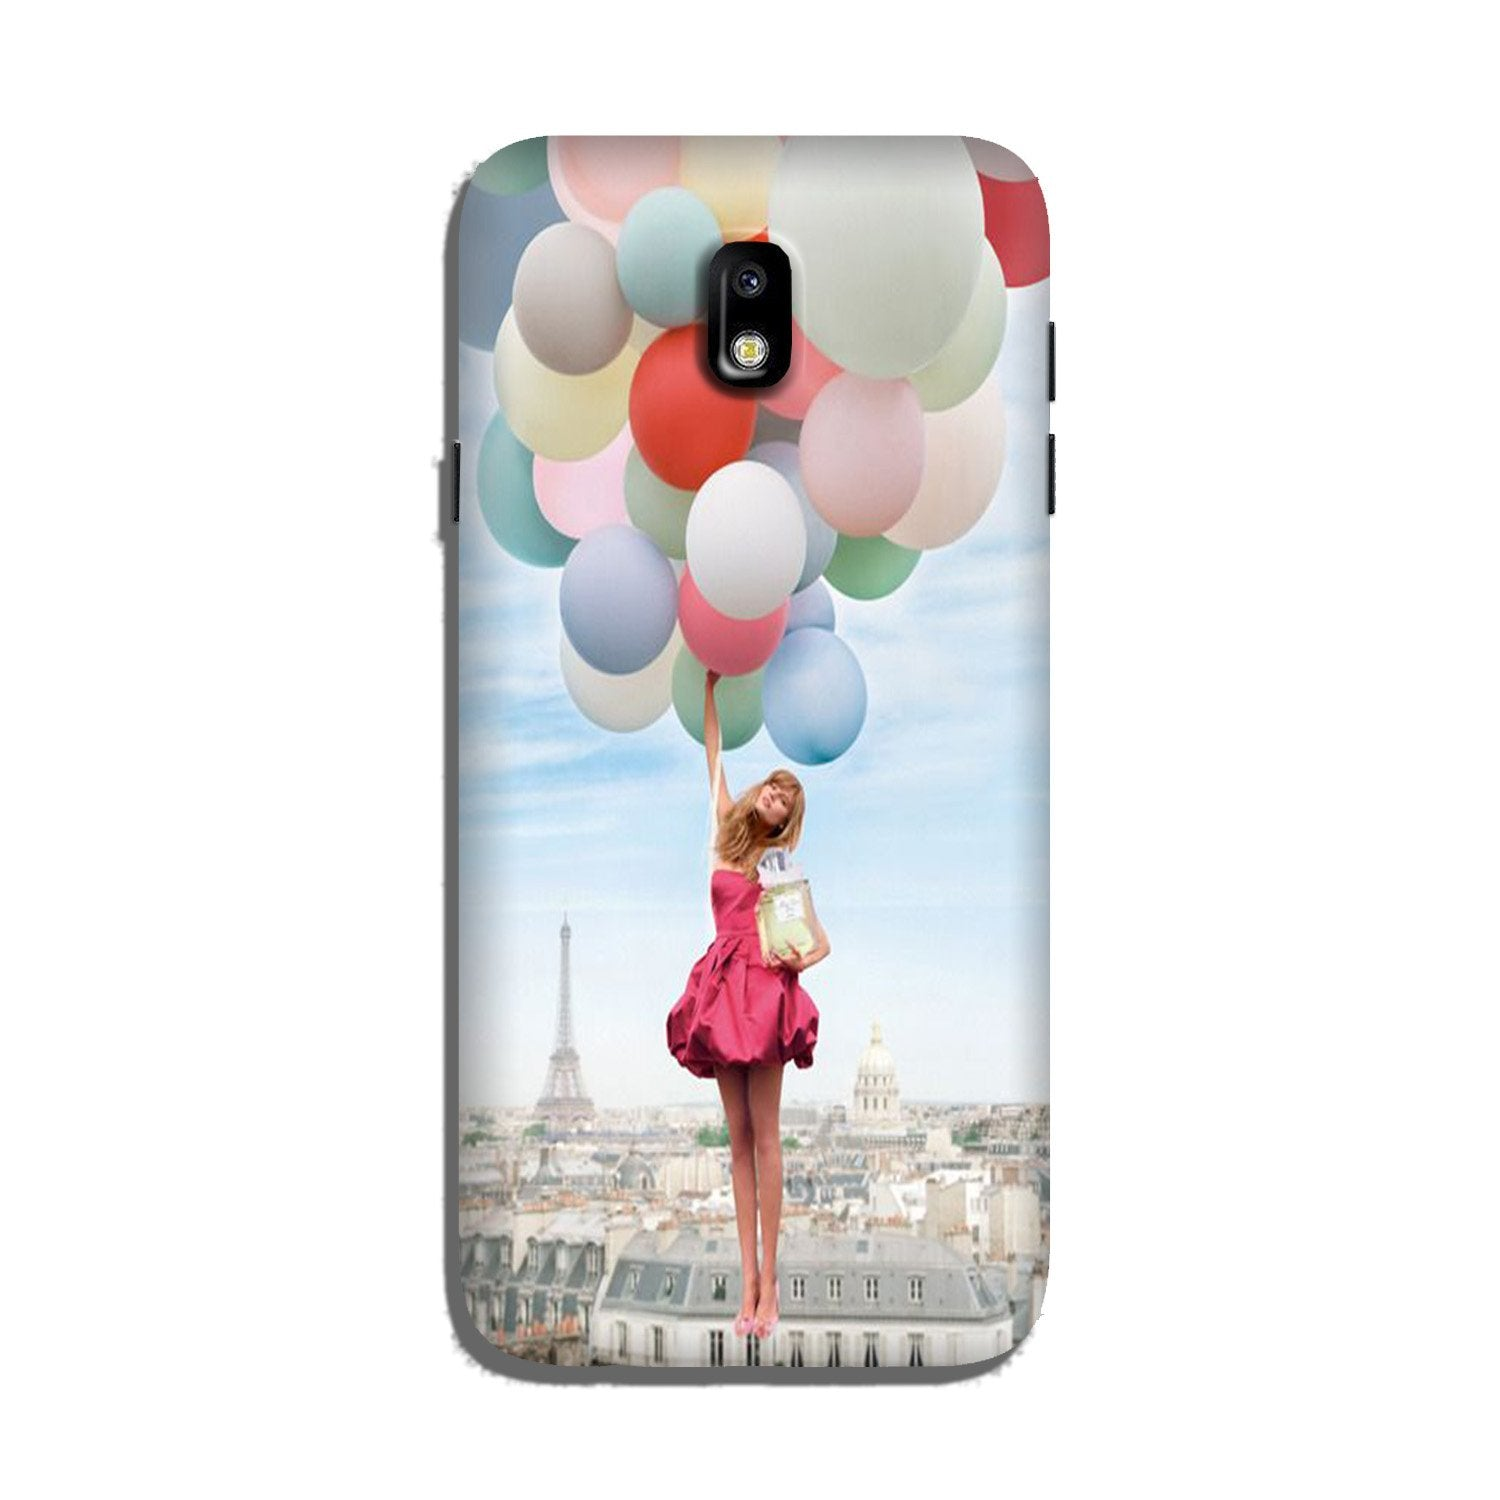 Girl with Baloon Case for Galaxy J5 Pro